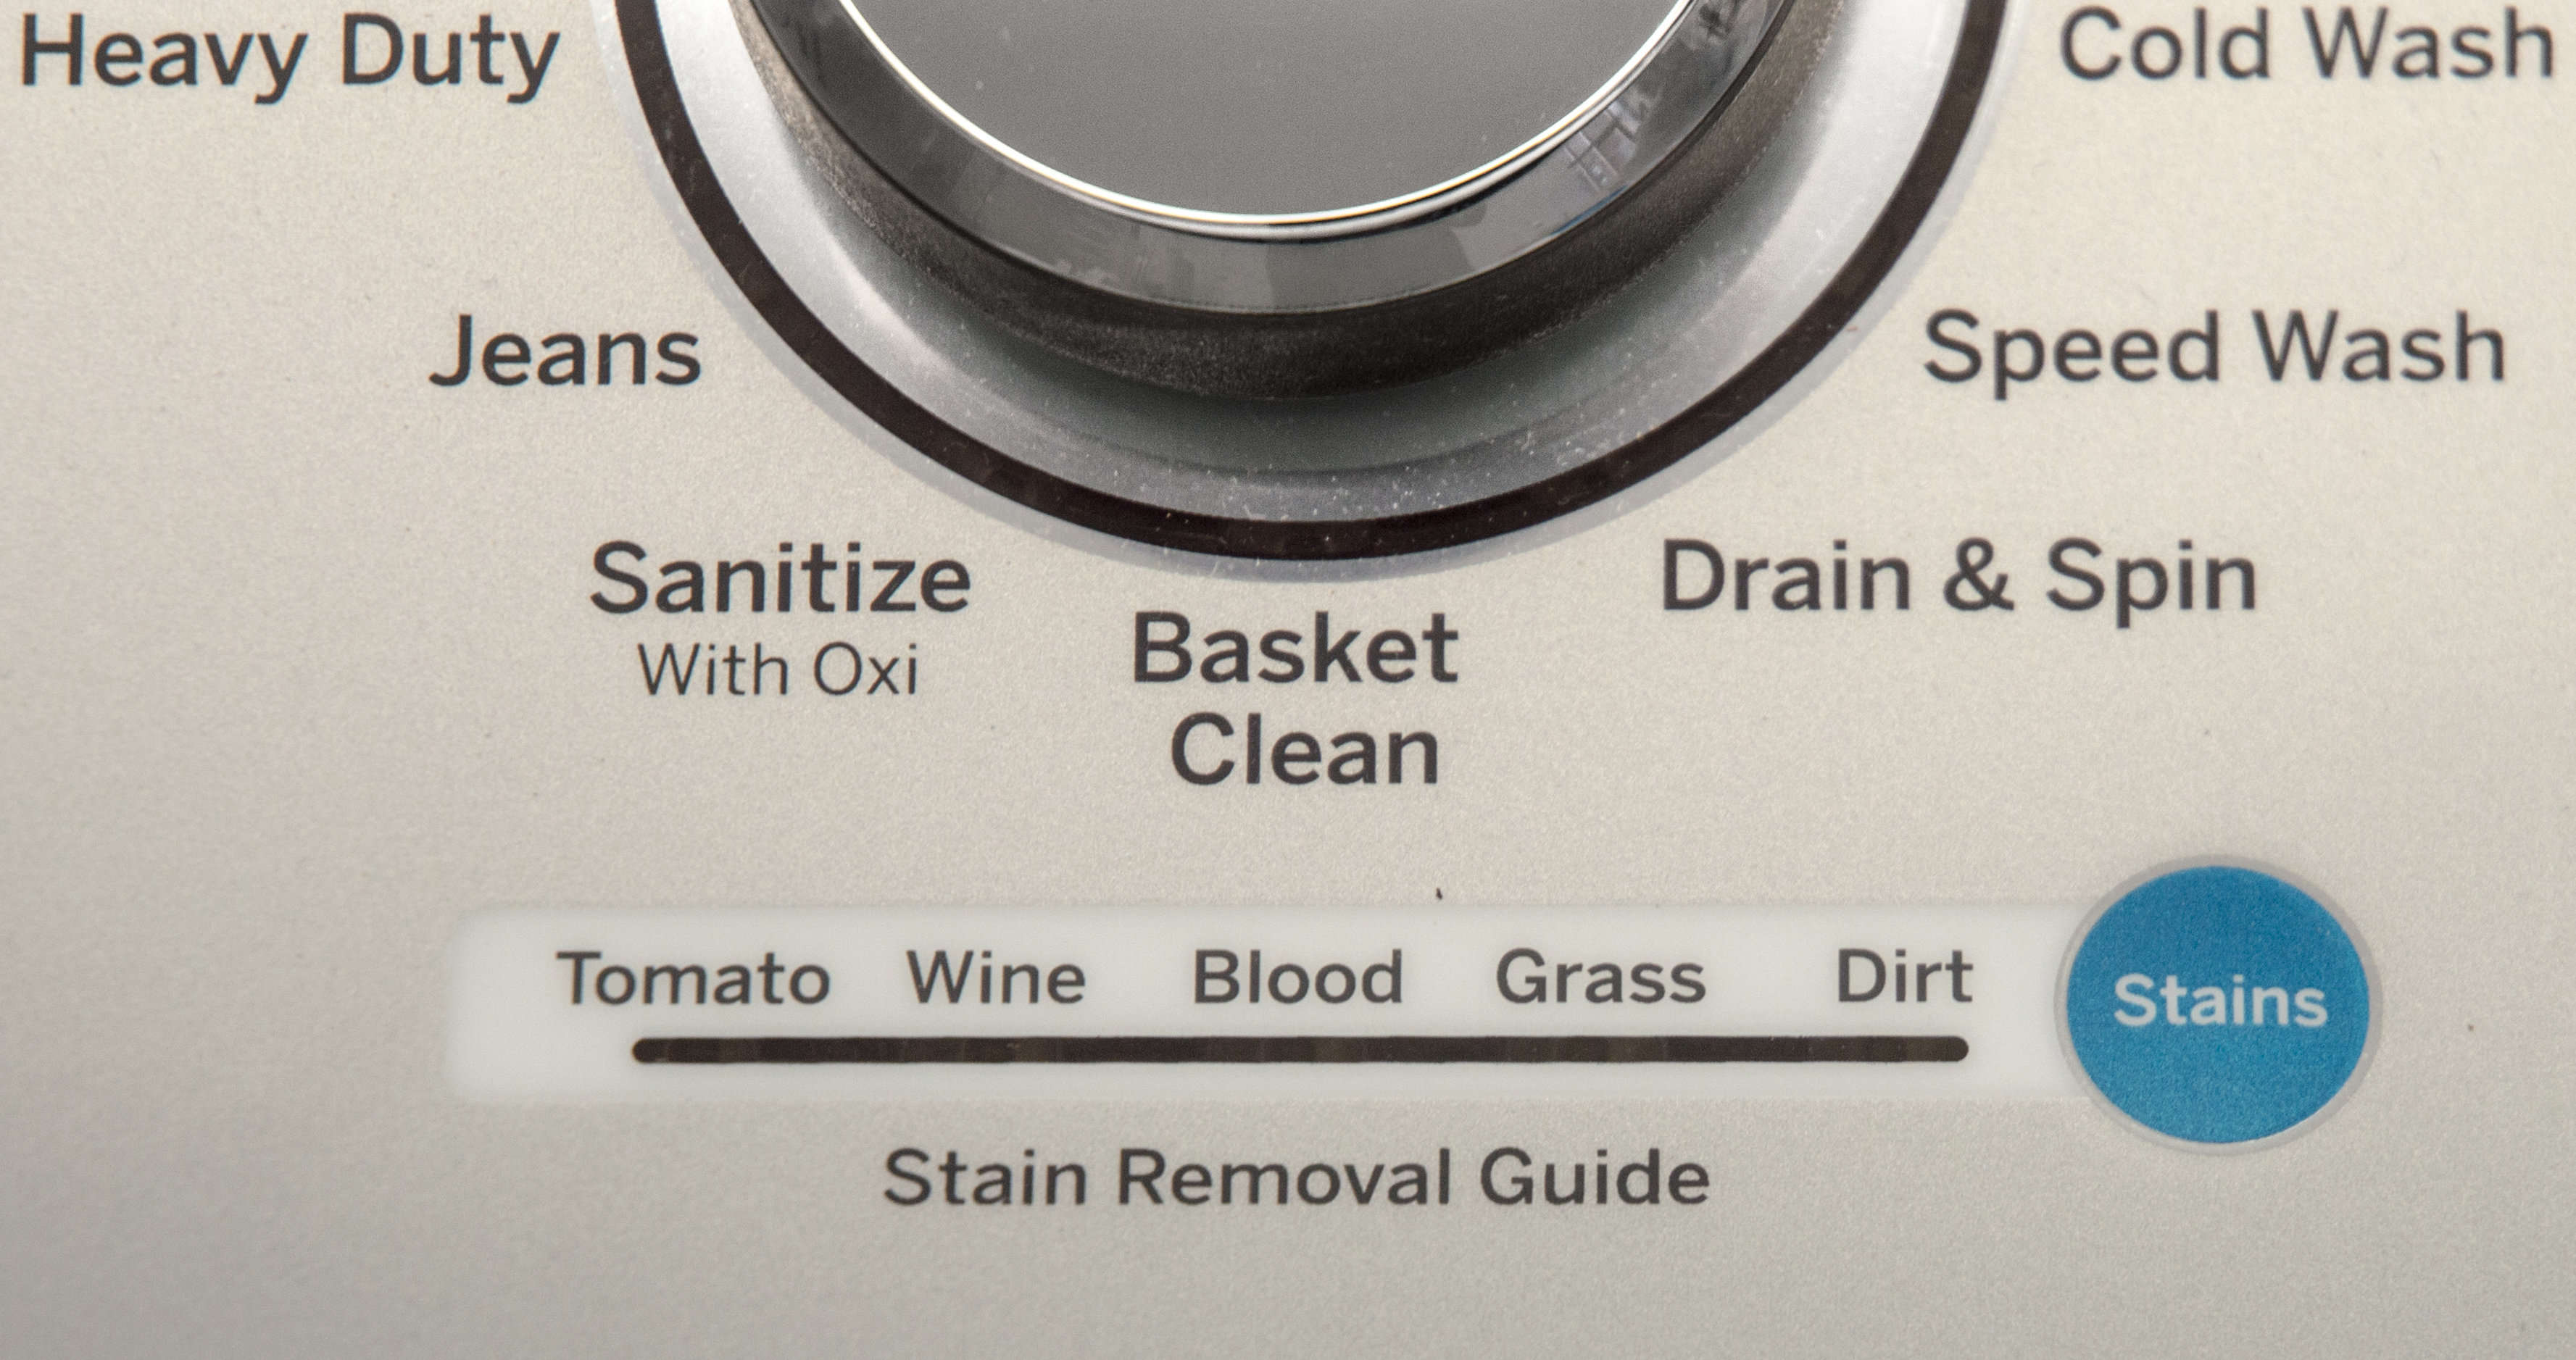 A stain guide helps automatically adjust the washer to the right settings.